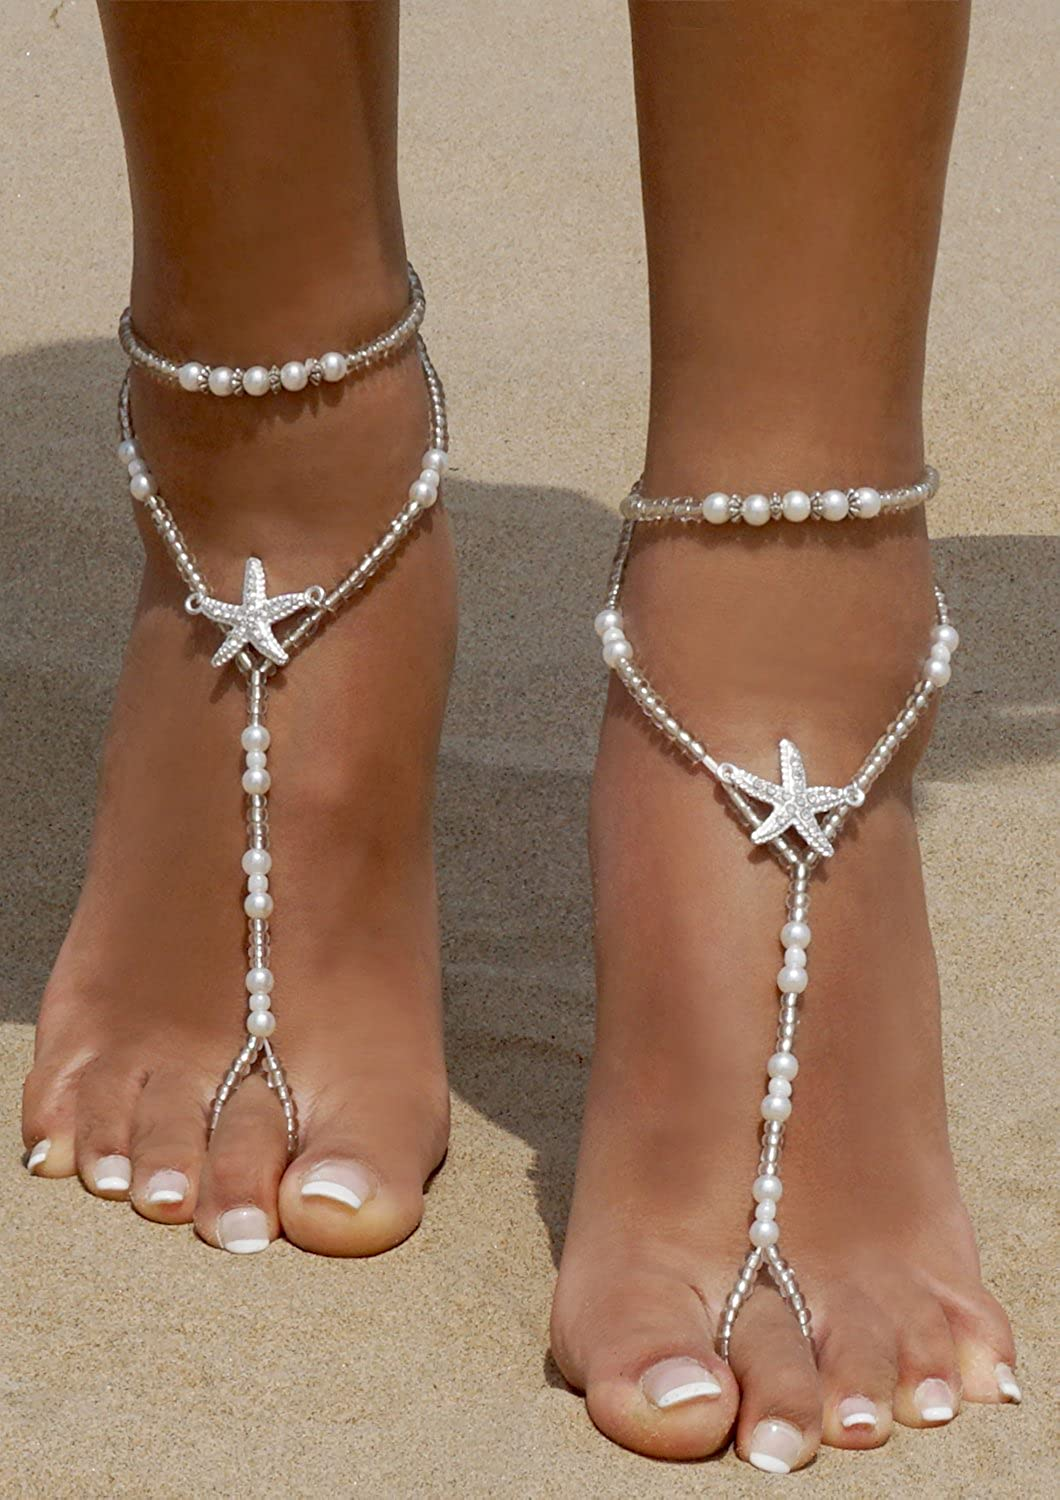 9df87ebc60b4 Anklets Bellady 2Pcs Pearl Ankle Chain Barefoot Sandals with Starfish Beach  Wedding Foot Jewelry White ZXG18030134